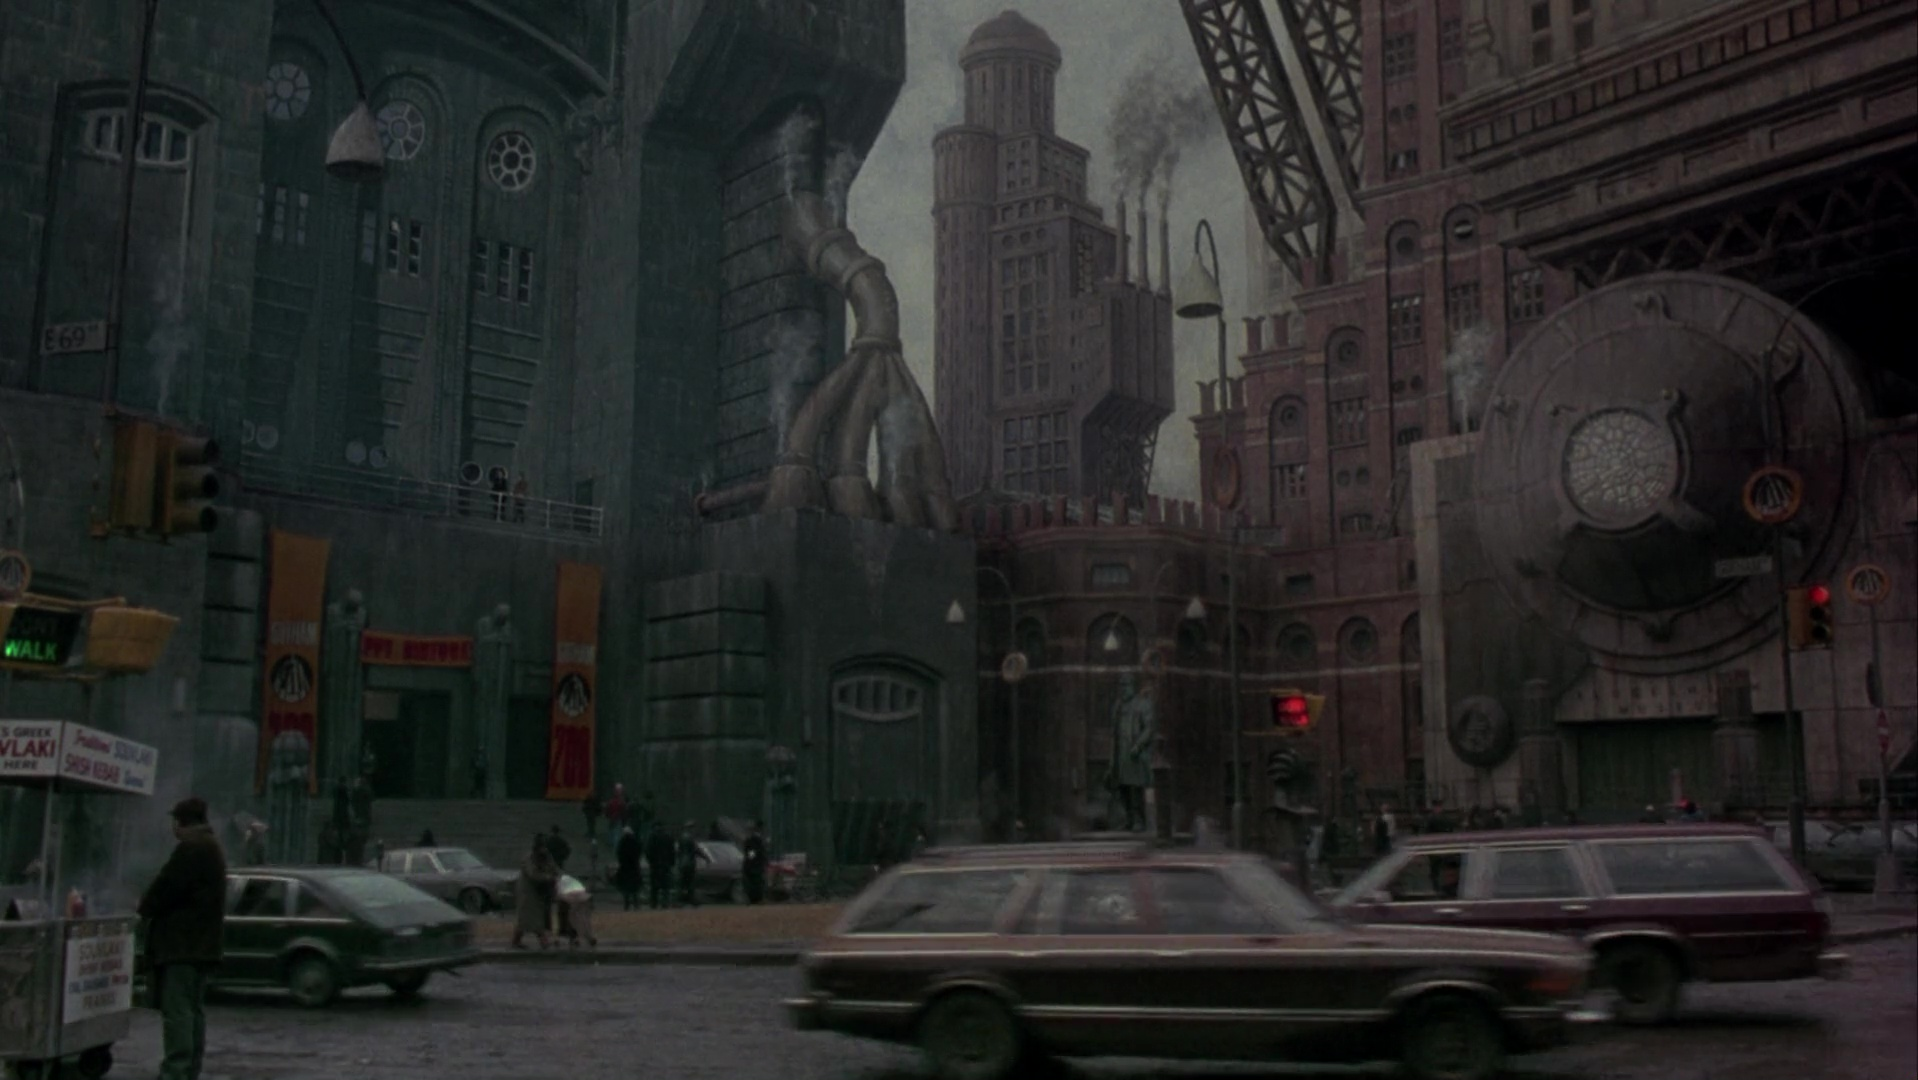 File:Screen1989Gotham2.jpg